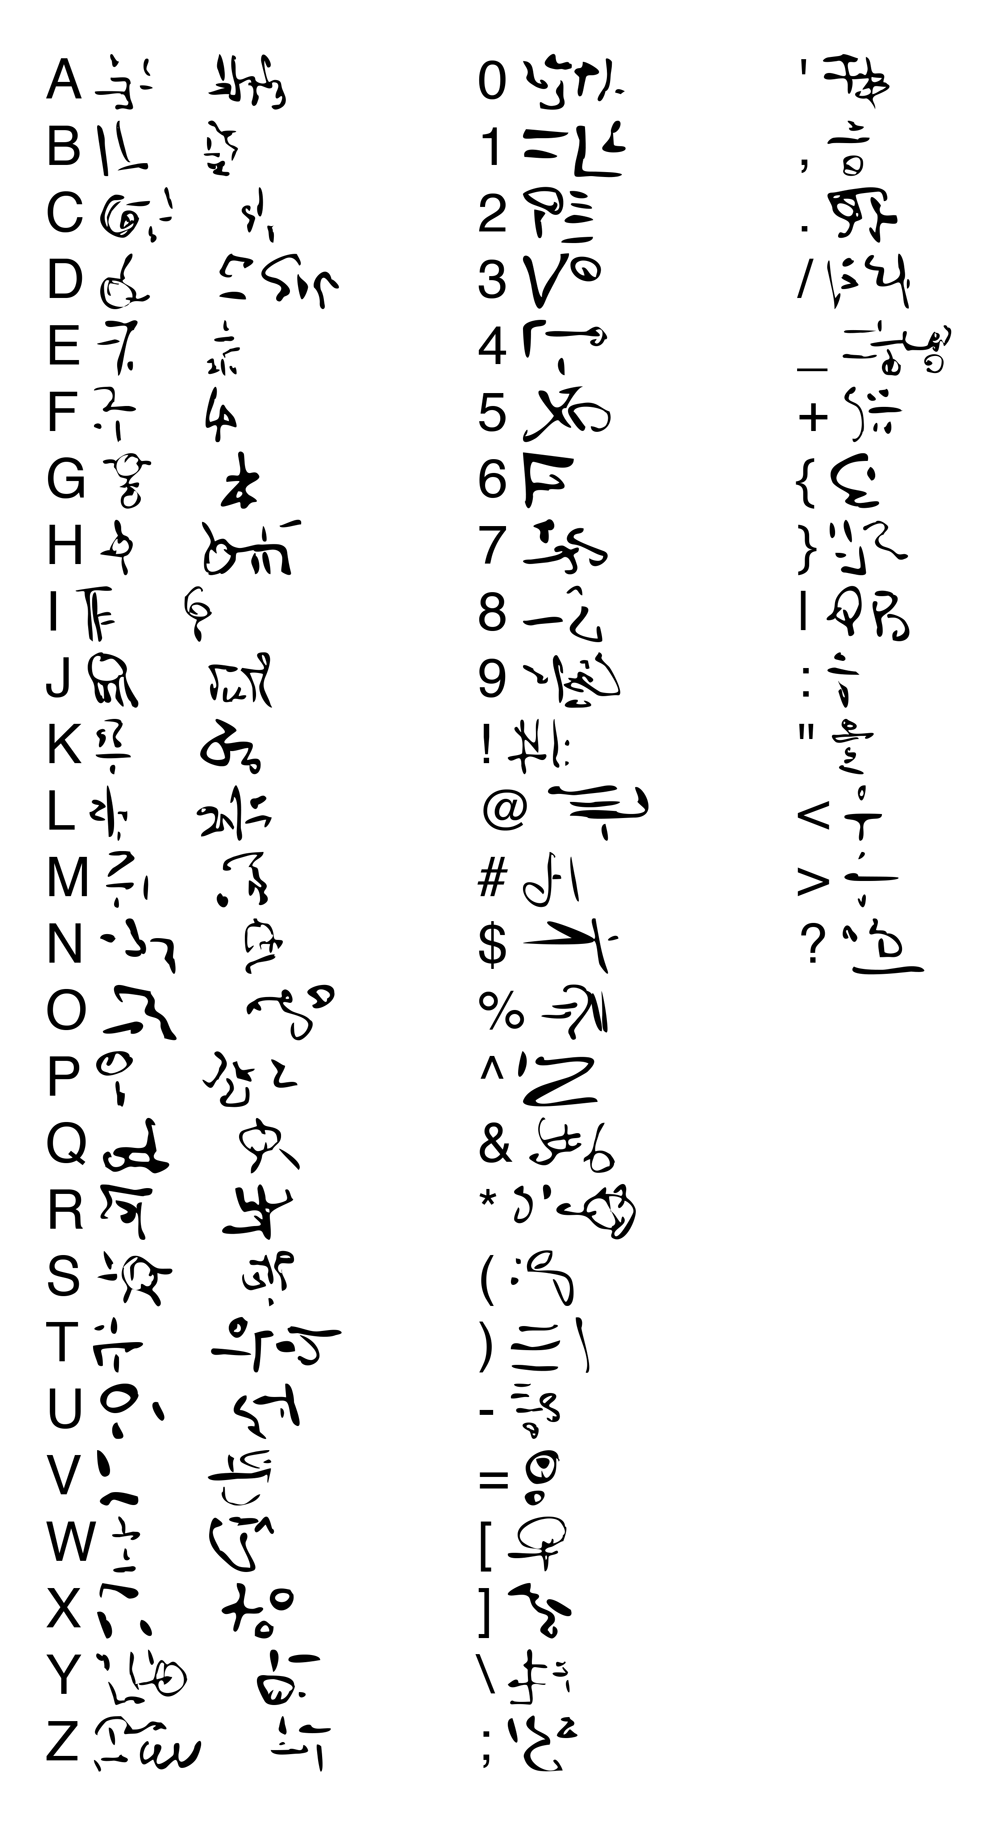 Glyphs in English and the hand drawn Observer language